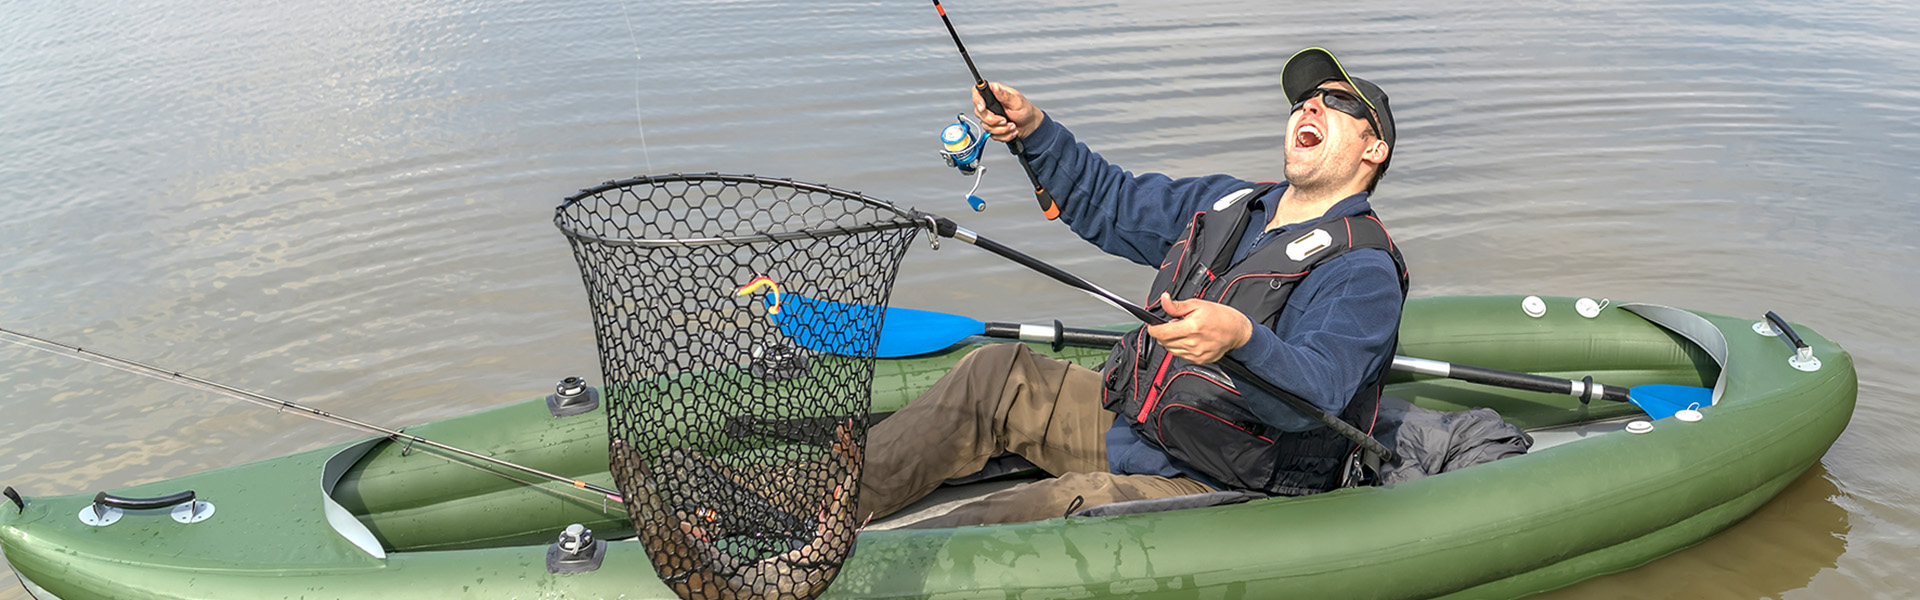 Kayak fishing. Fisherman catch pike fish on inflatable boat with fishing tackle at lake.